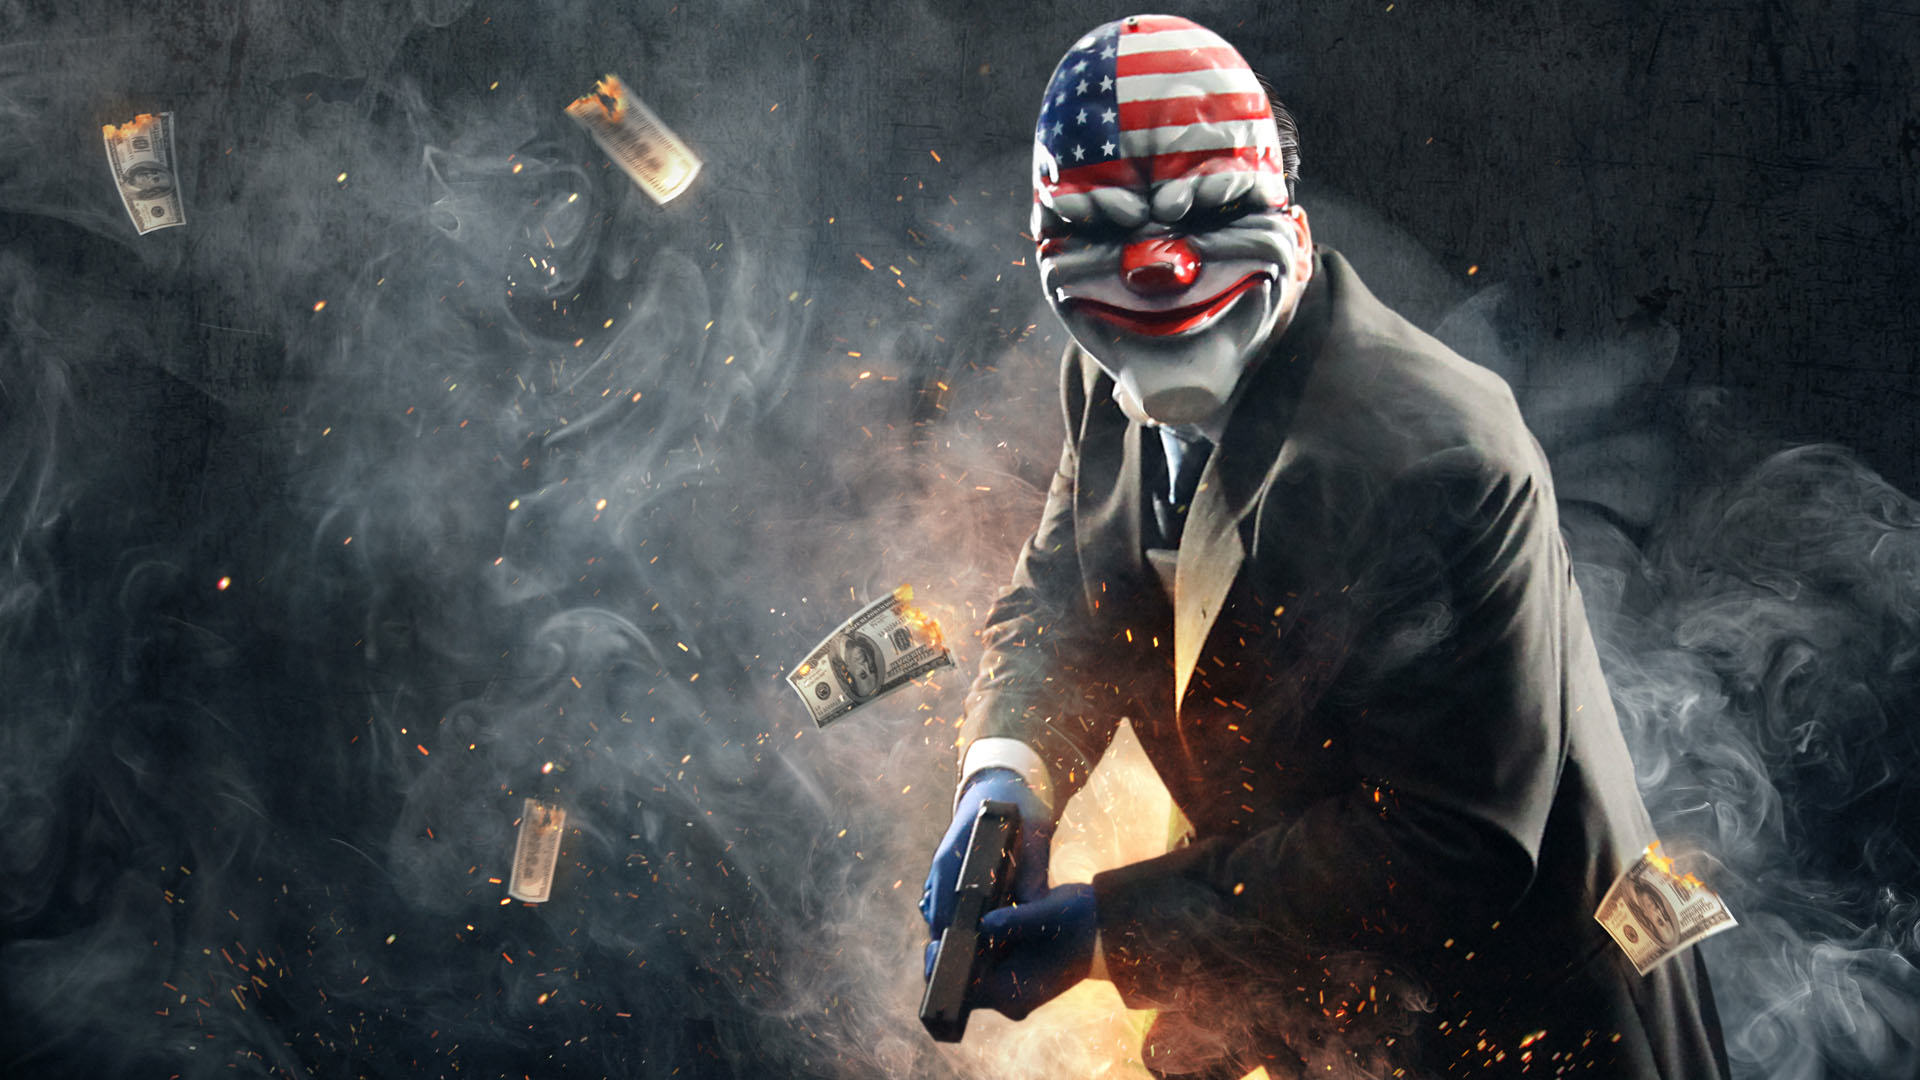 PayDay 2 Devs Add Microtransactions And People Are Not Happy UNILAD 7aaf9c413df949a96f5934c50fef739c5cde094160022